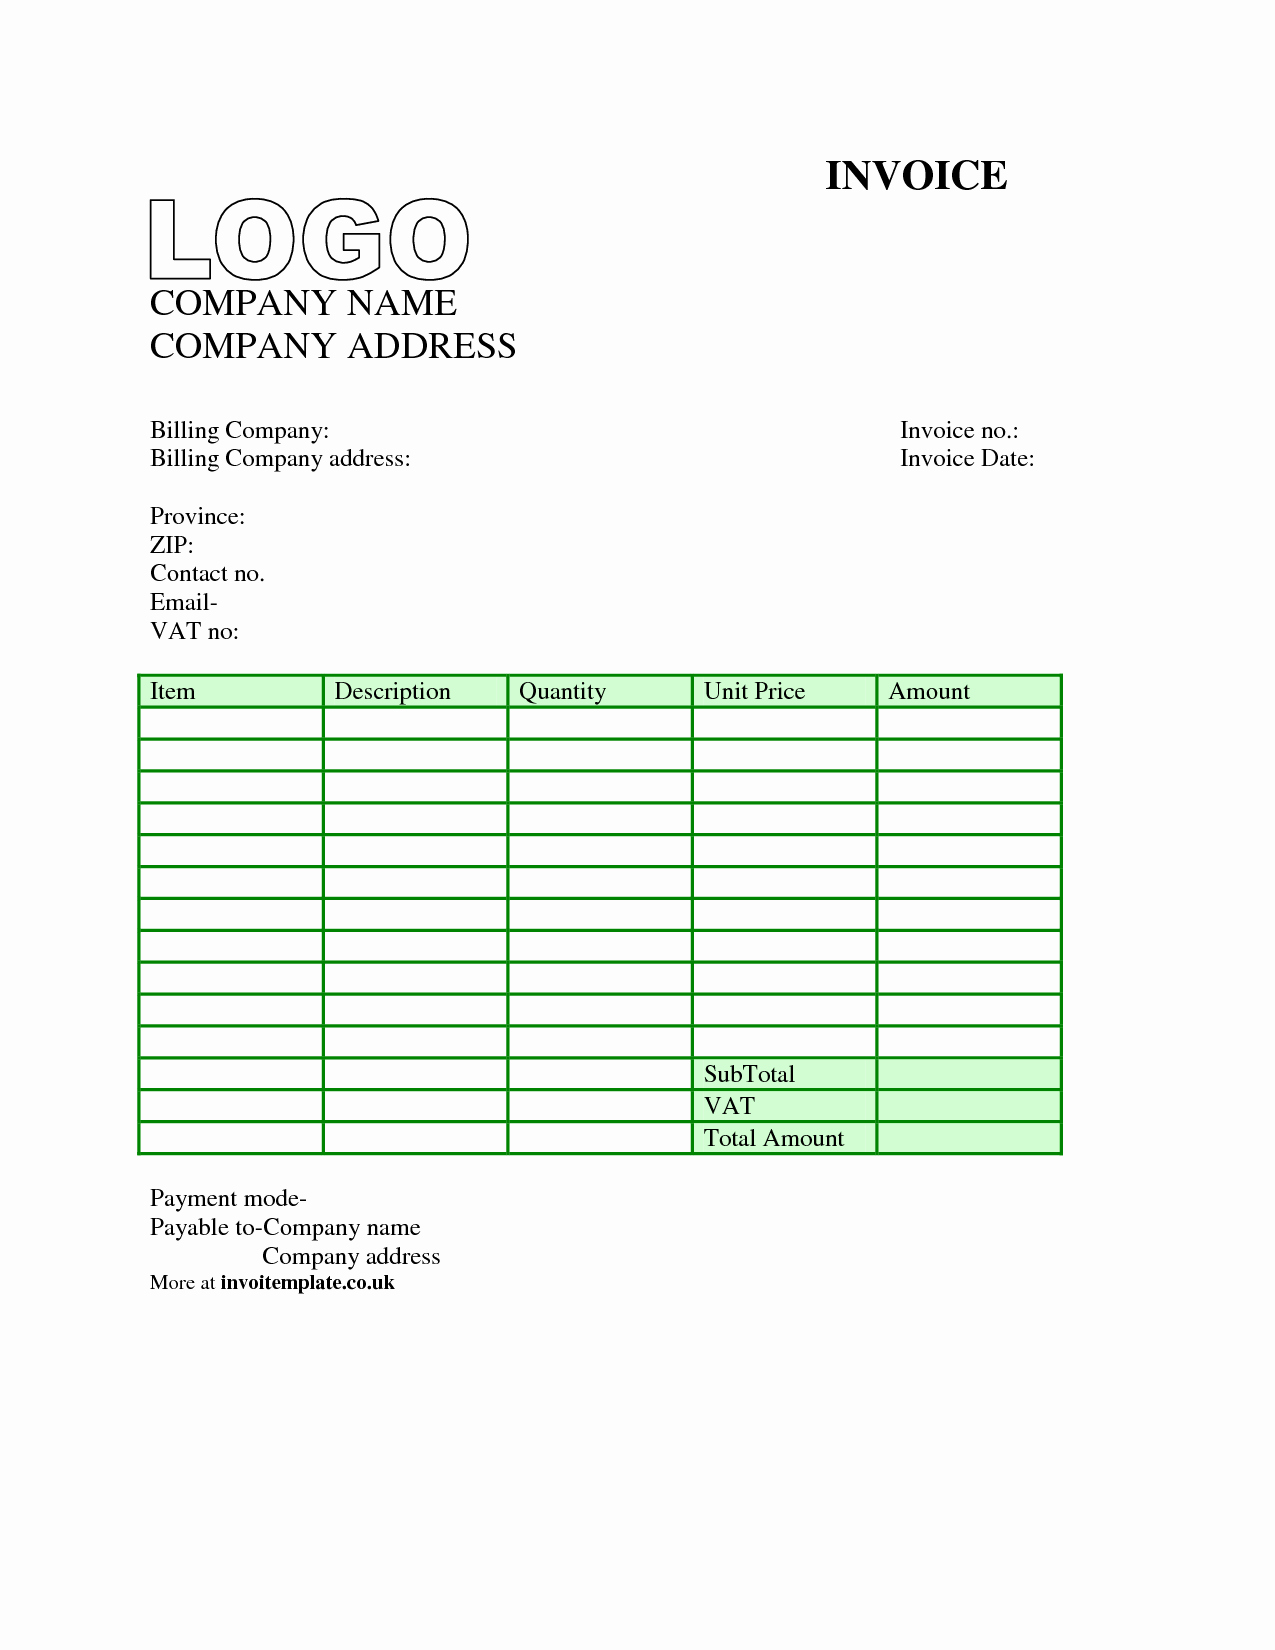 Excel Invoice Template Free Download Elegant Invoice Template Uk Word Download